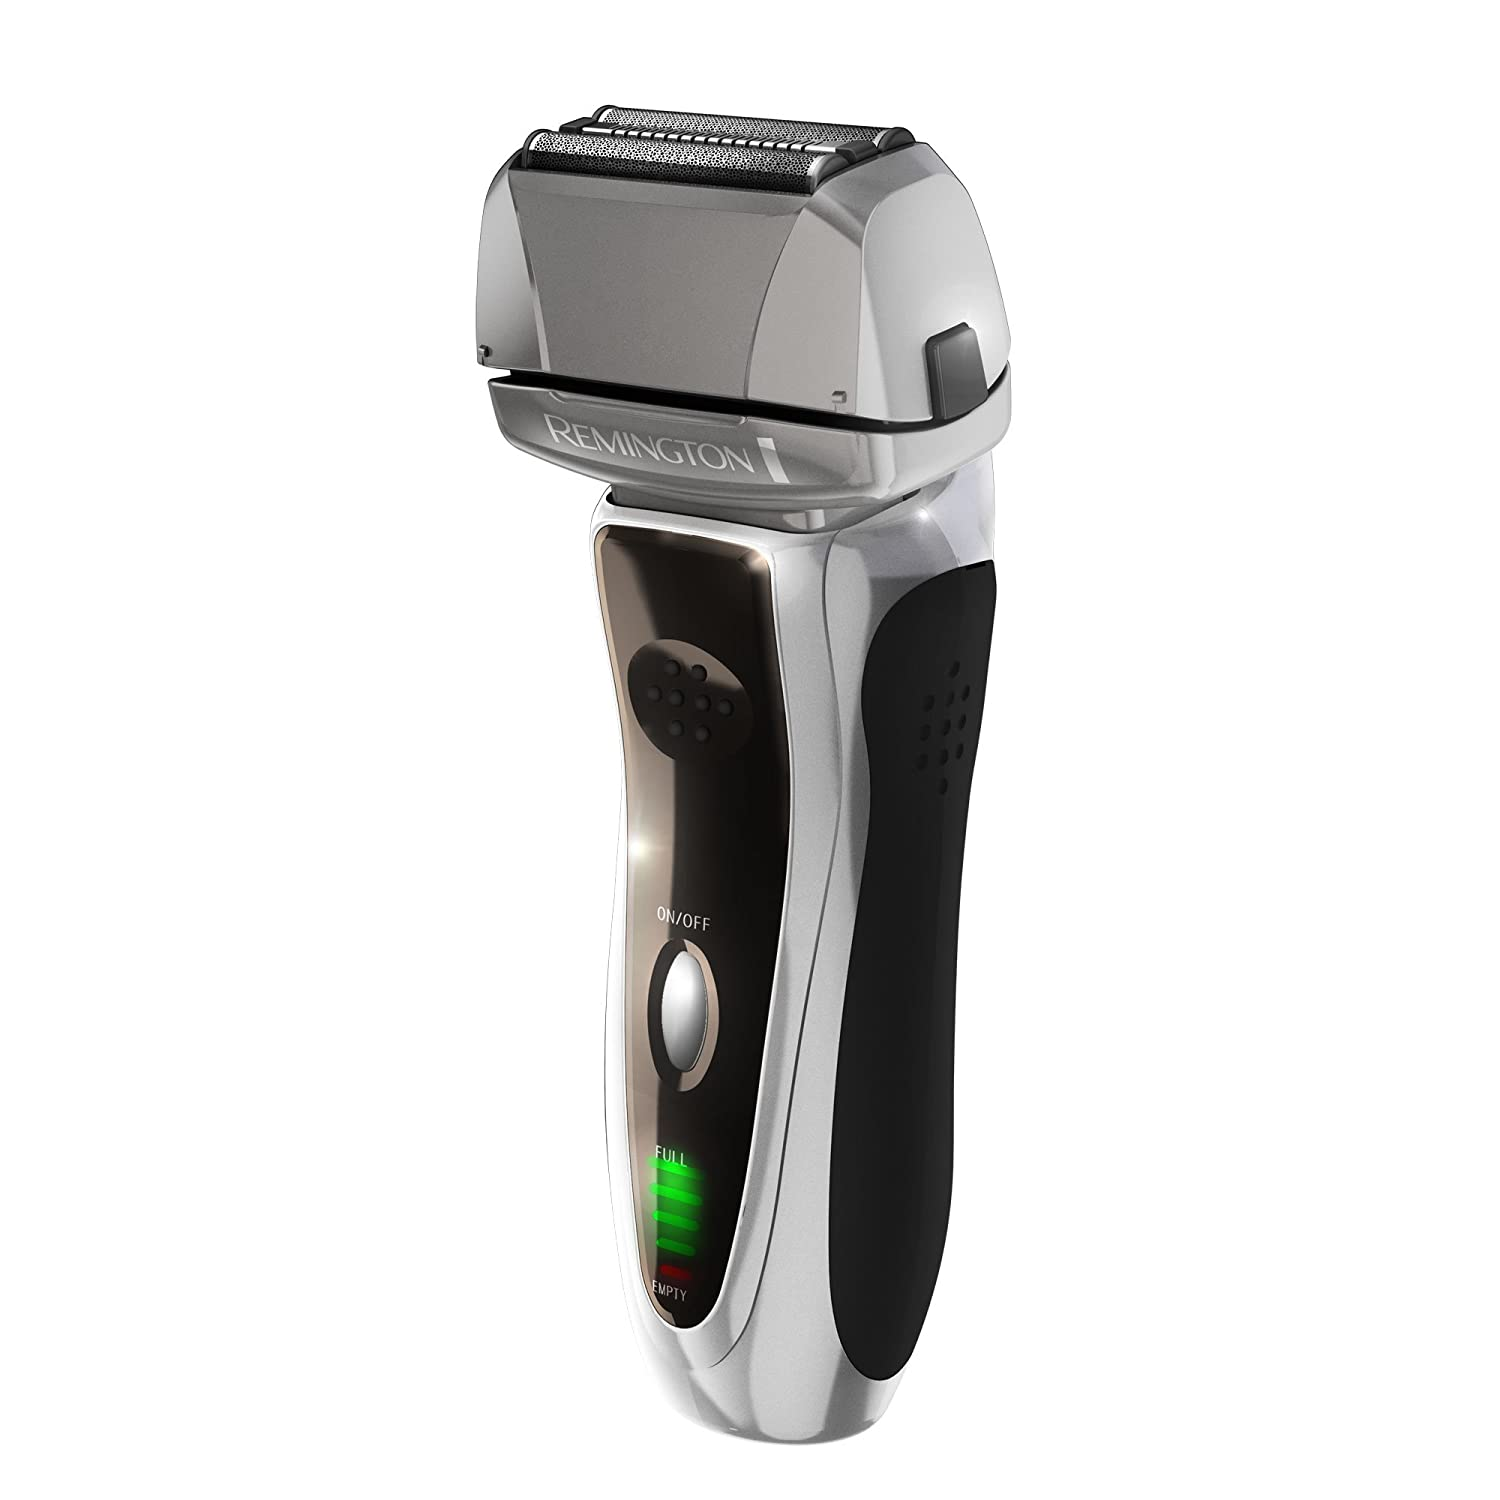 Remington FR-730 Pivot and Flex Men's Rechargeable Shaver with Two Flexing Foils and Intercept Trimmer, Grey $50.99